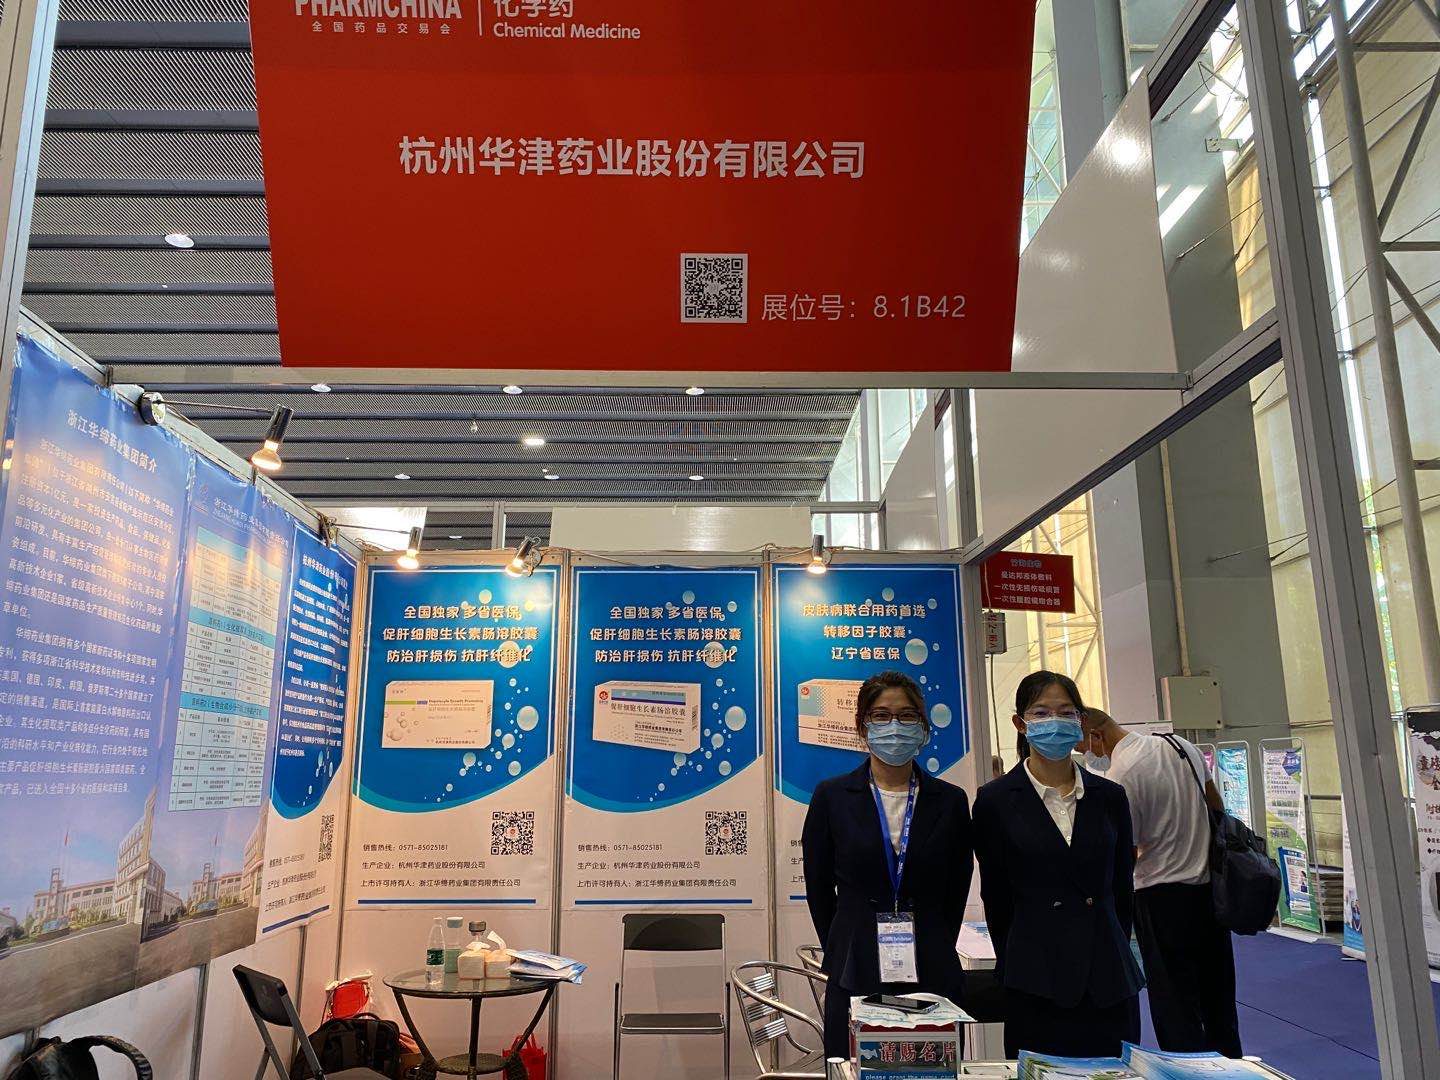 the 83rd Pharmchina was held in Guangzhou.